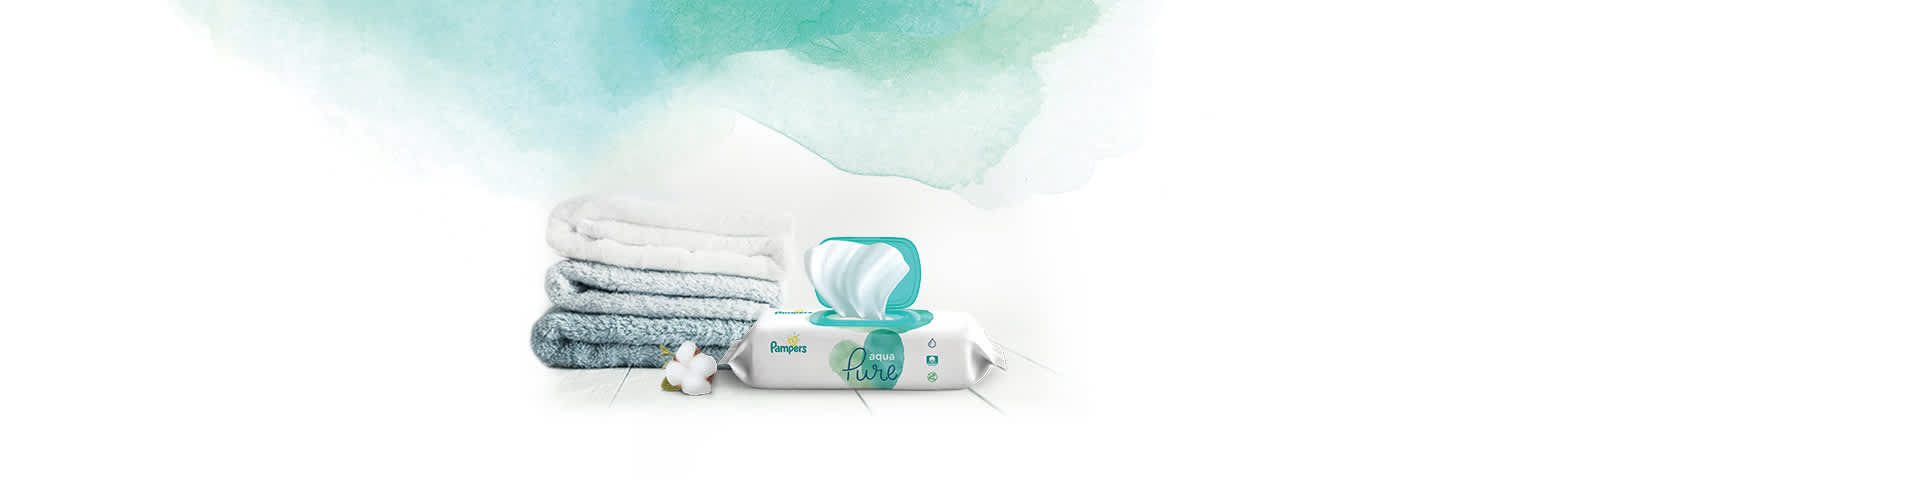 D-Wipes-Top-image-1920x480